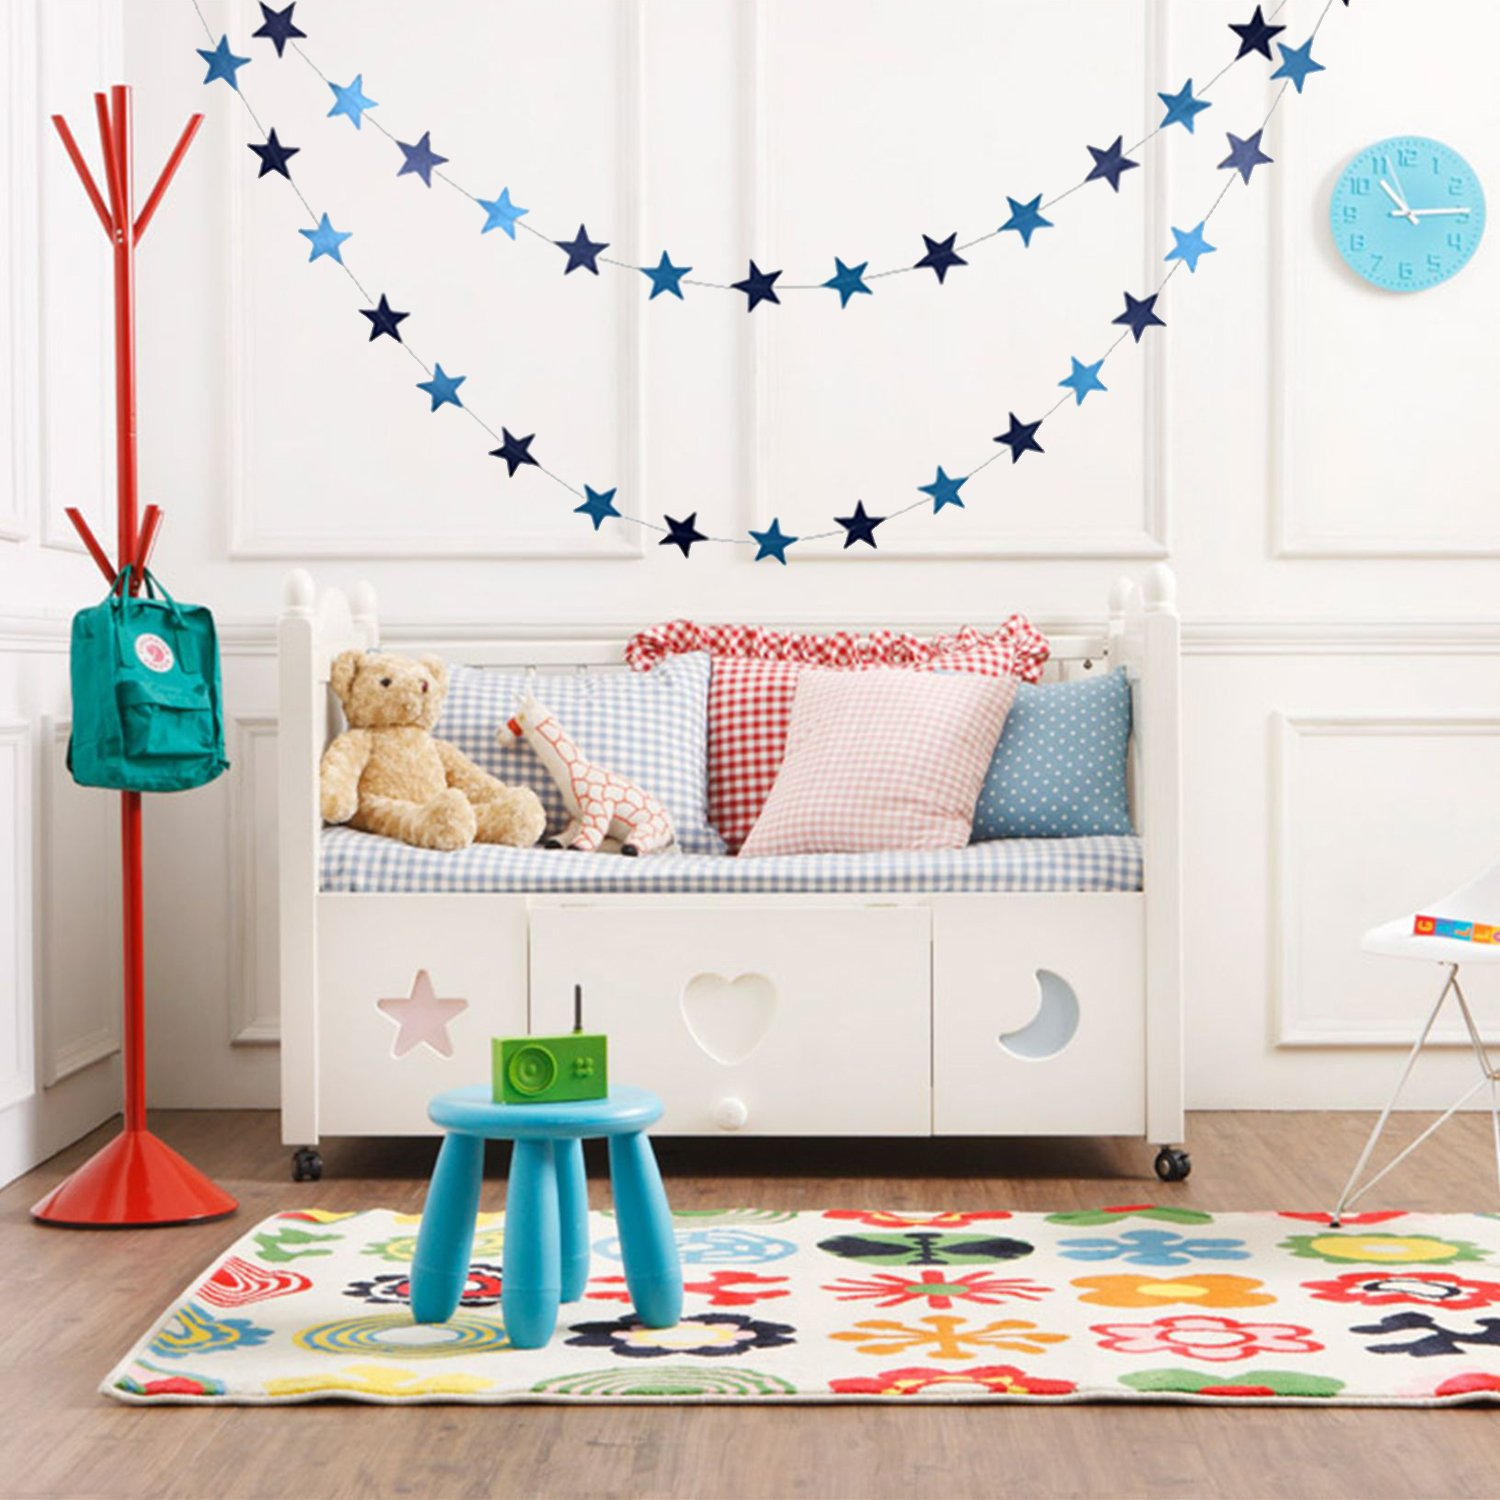 4M Sparkling Star Garland Colorful Stars Hanging Decoration Weddings Parties Children's Rooms Mosquito Nets For Baby Room Decor